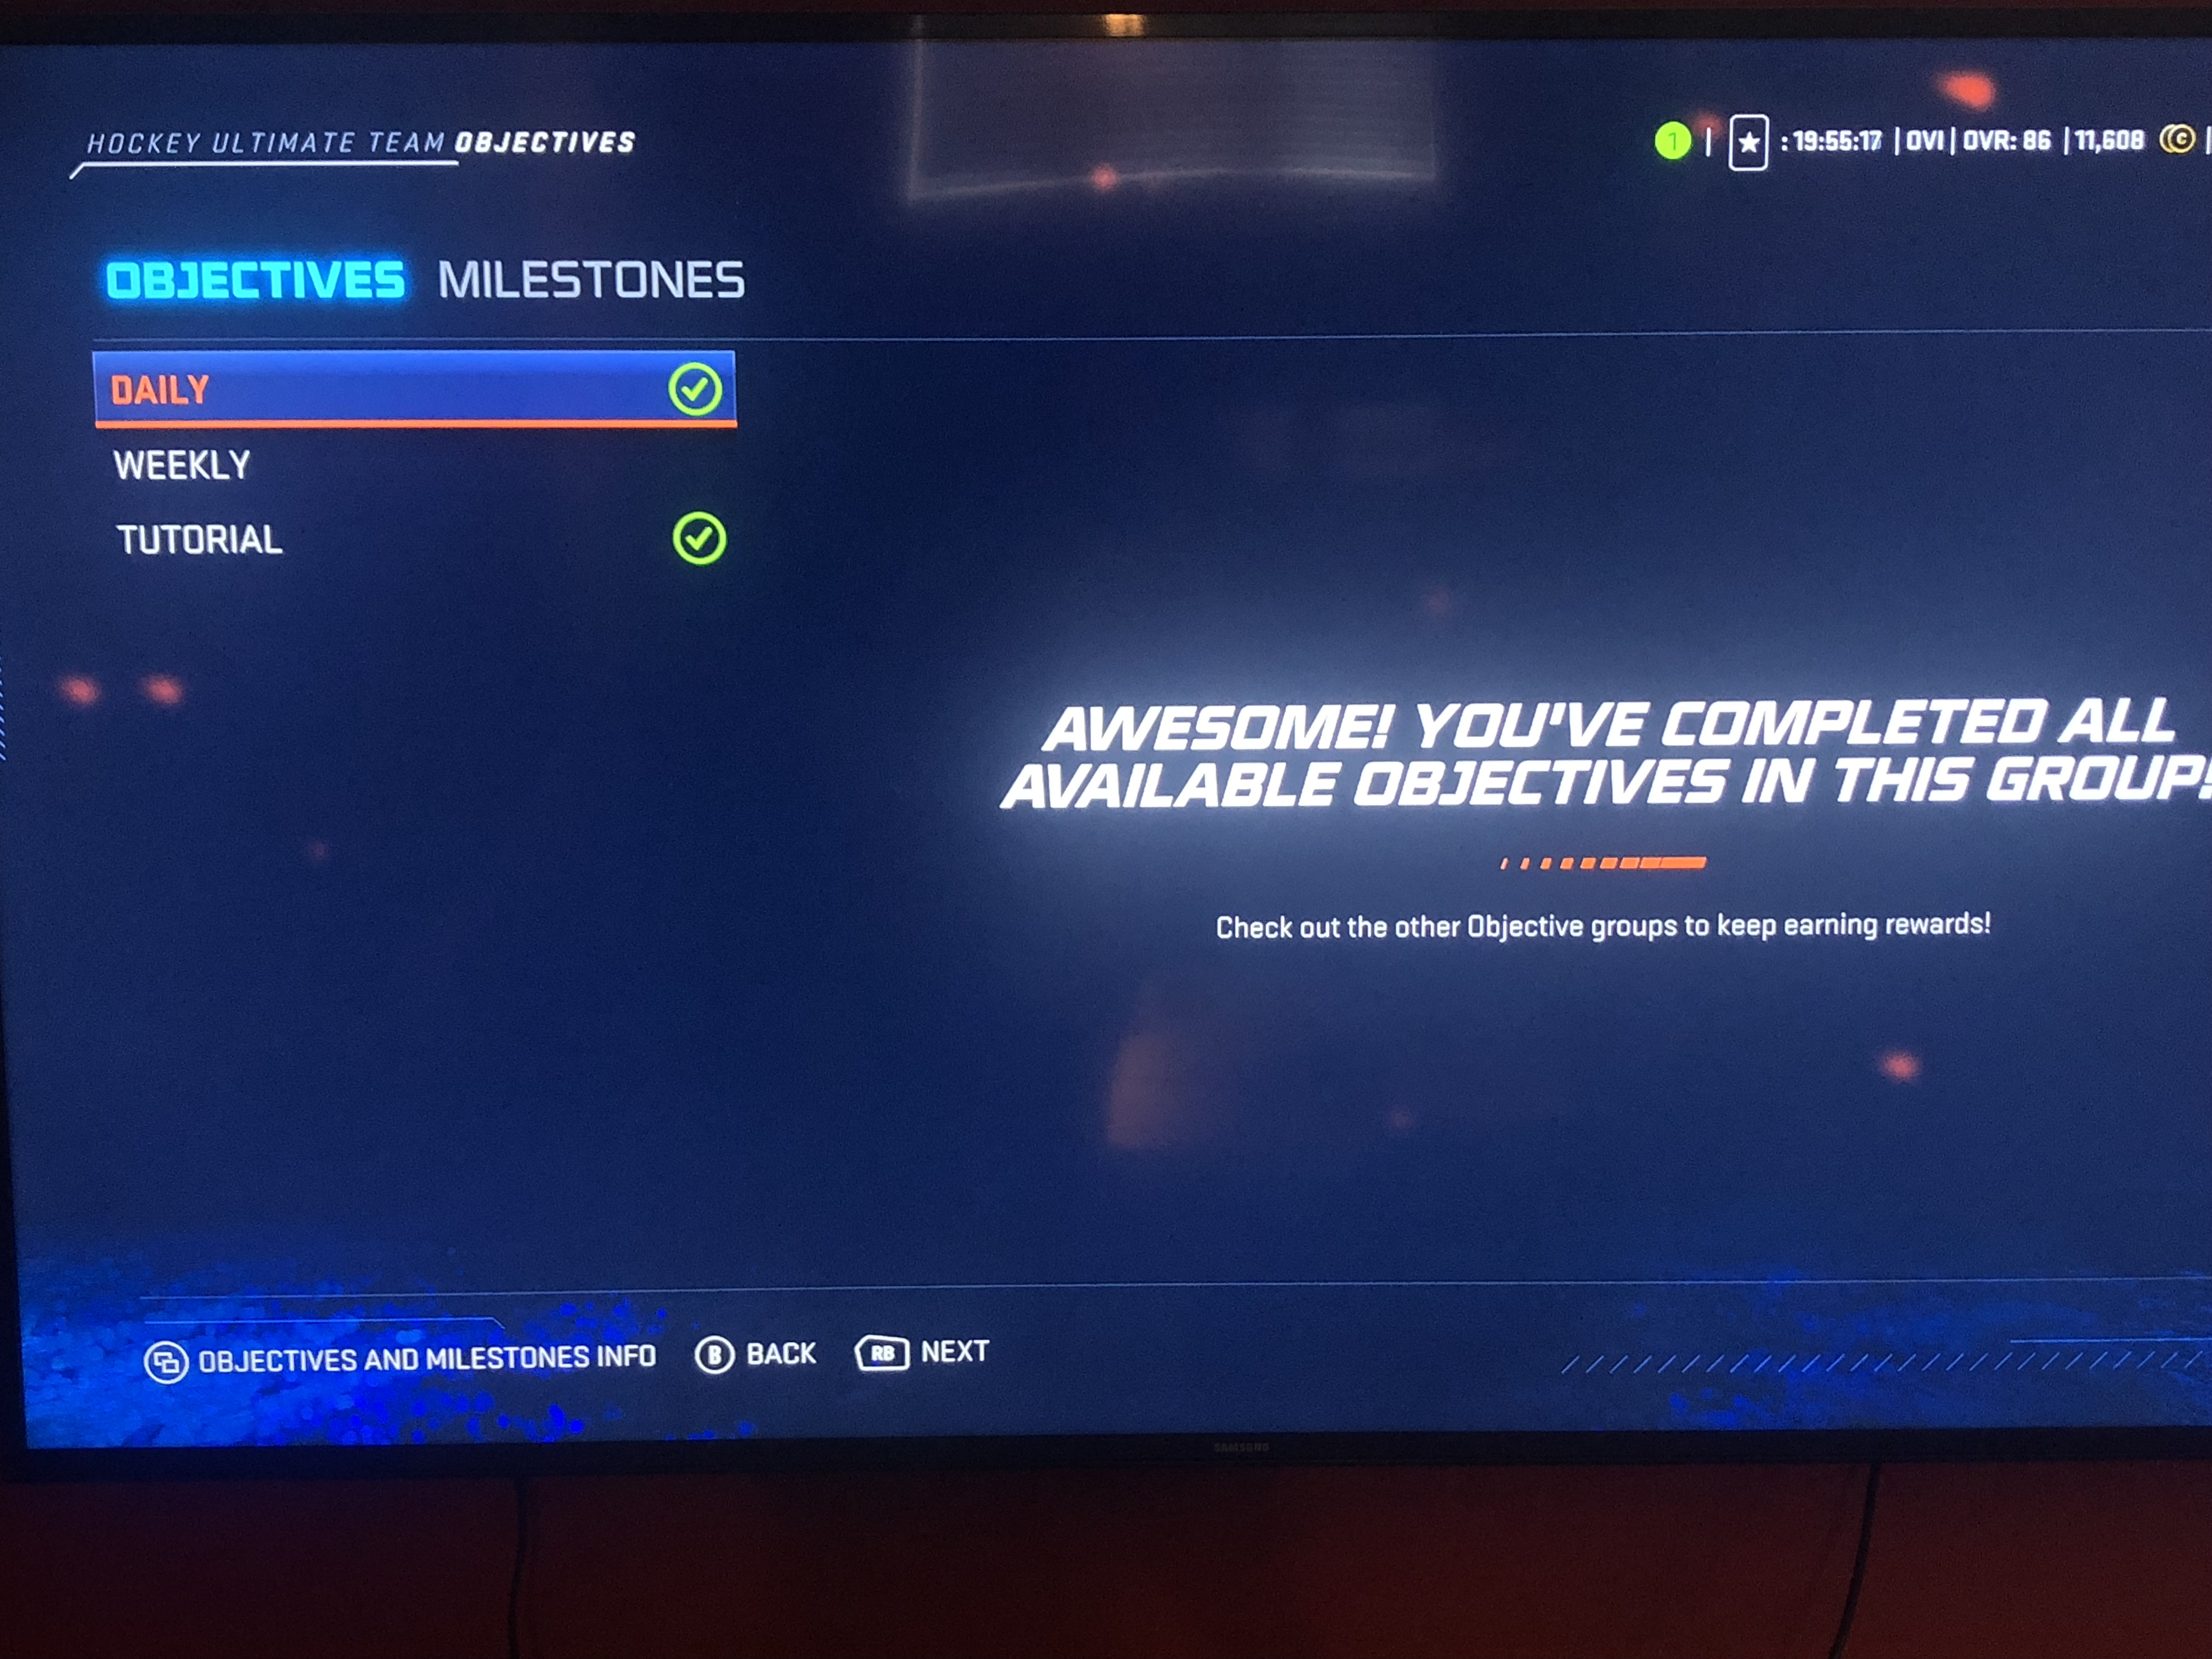 Solved: HUT daily objectives bug - Answer HQ